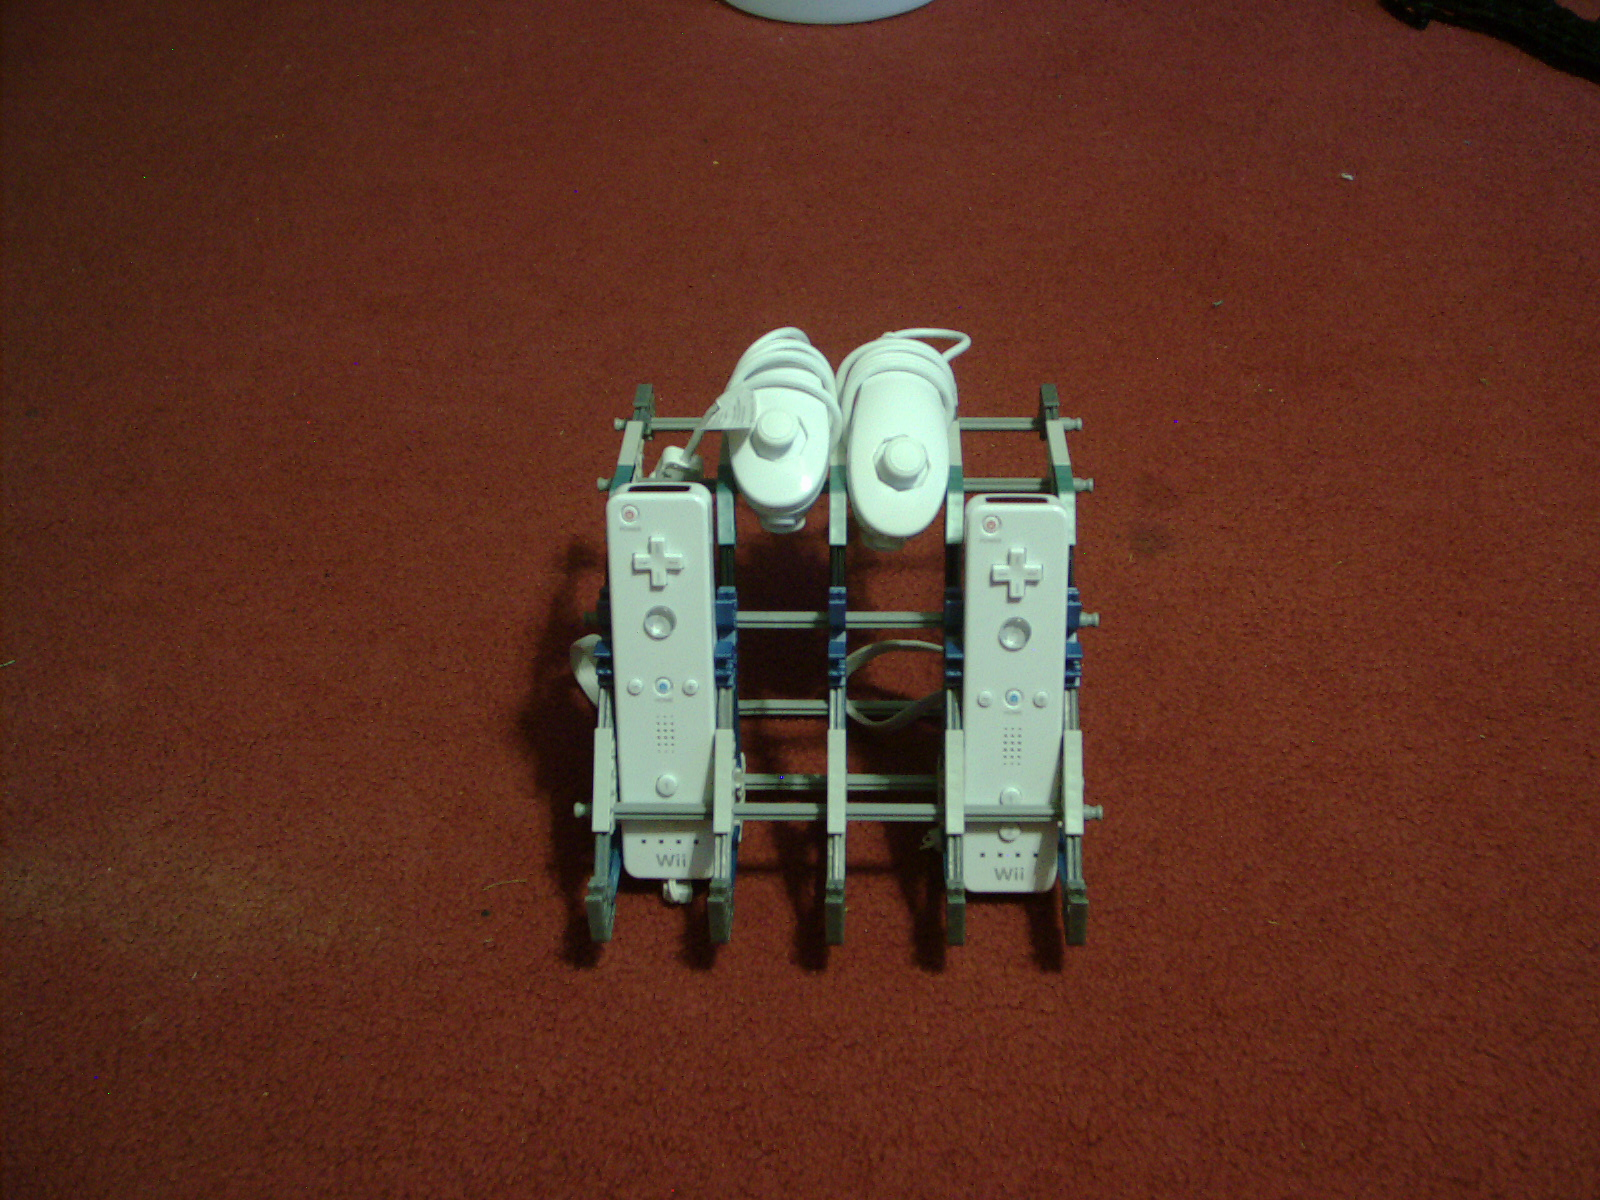 Wii controller and nunchuck stand.